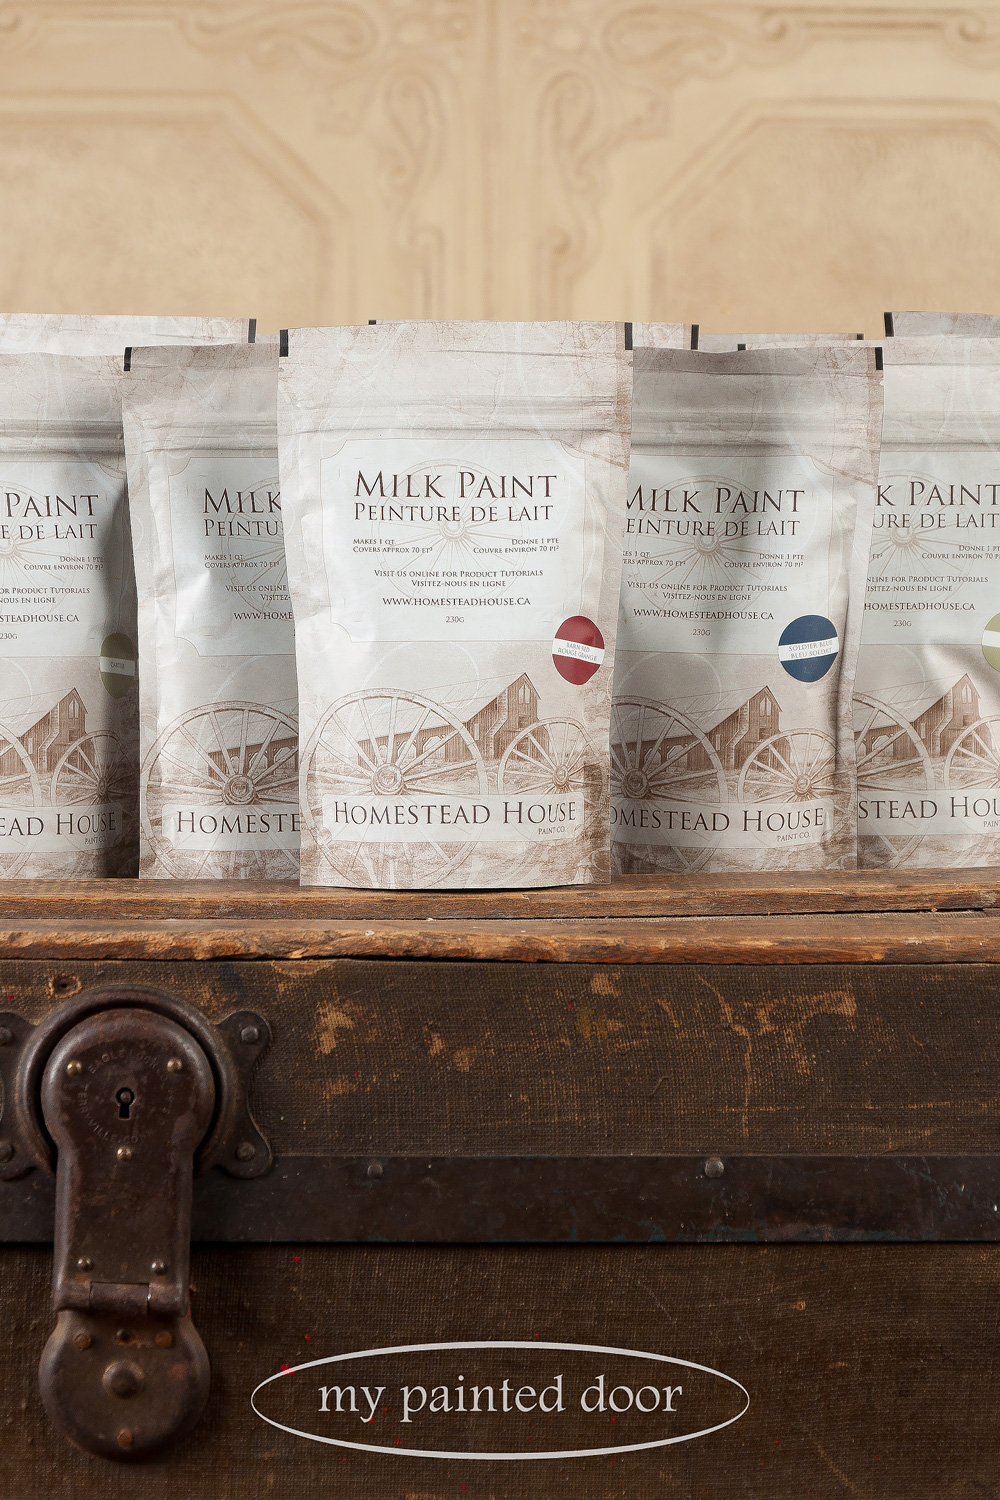 Homestead House milk paint available at My Painted Door (.com)